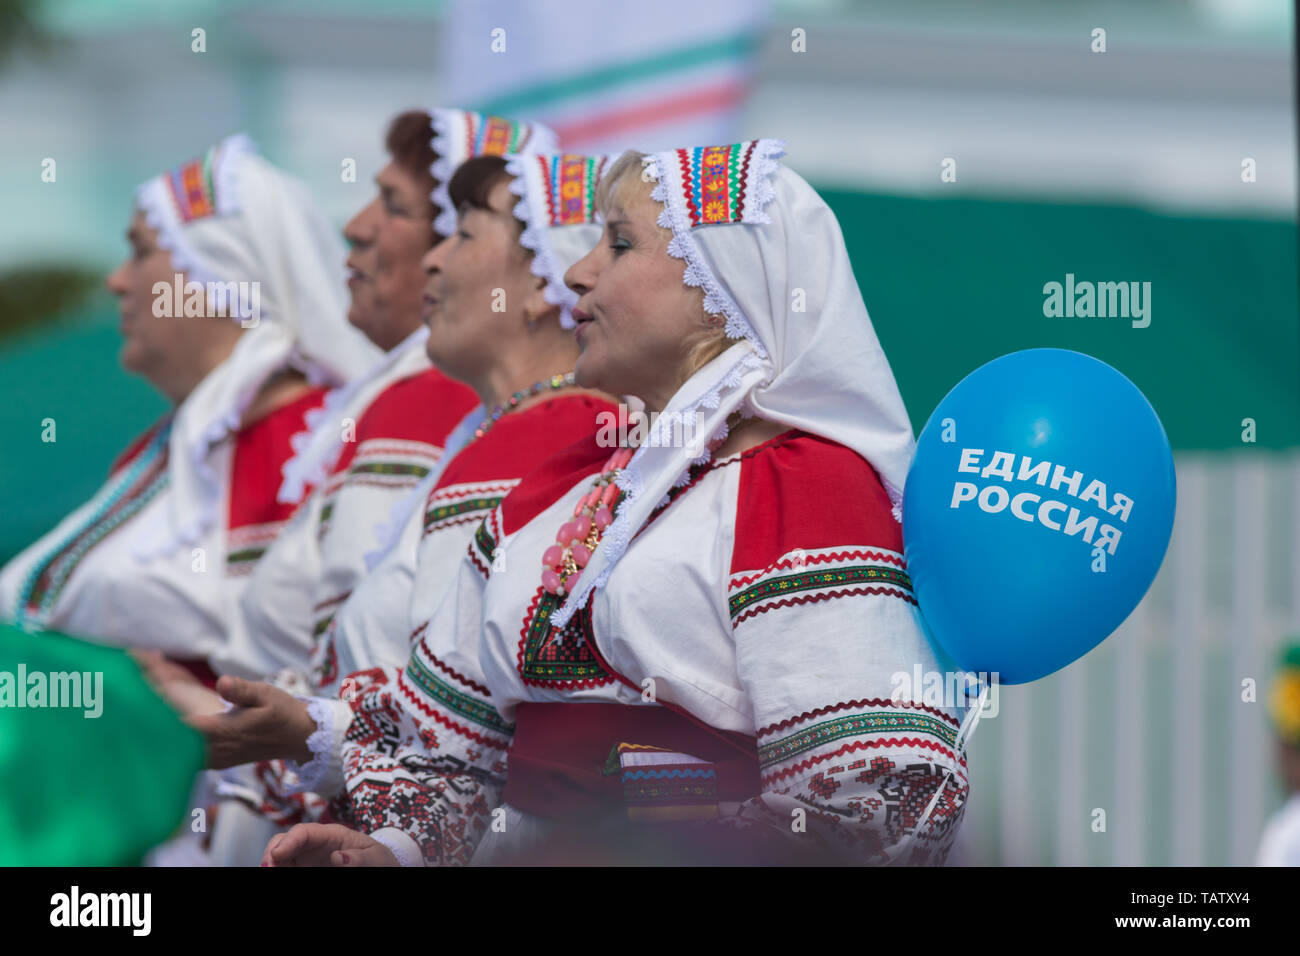 RUSSIA, Nikolskoe village, Republic of Tatarstan 25-05-2019: A group of mature women dancing traditional dance. A balloon with a name of Political Par Stock Photo